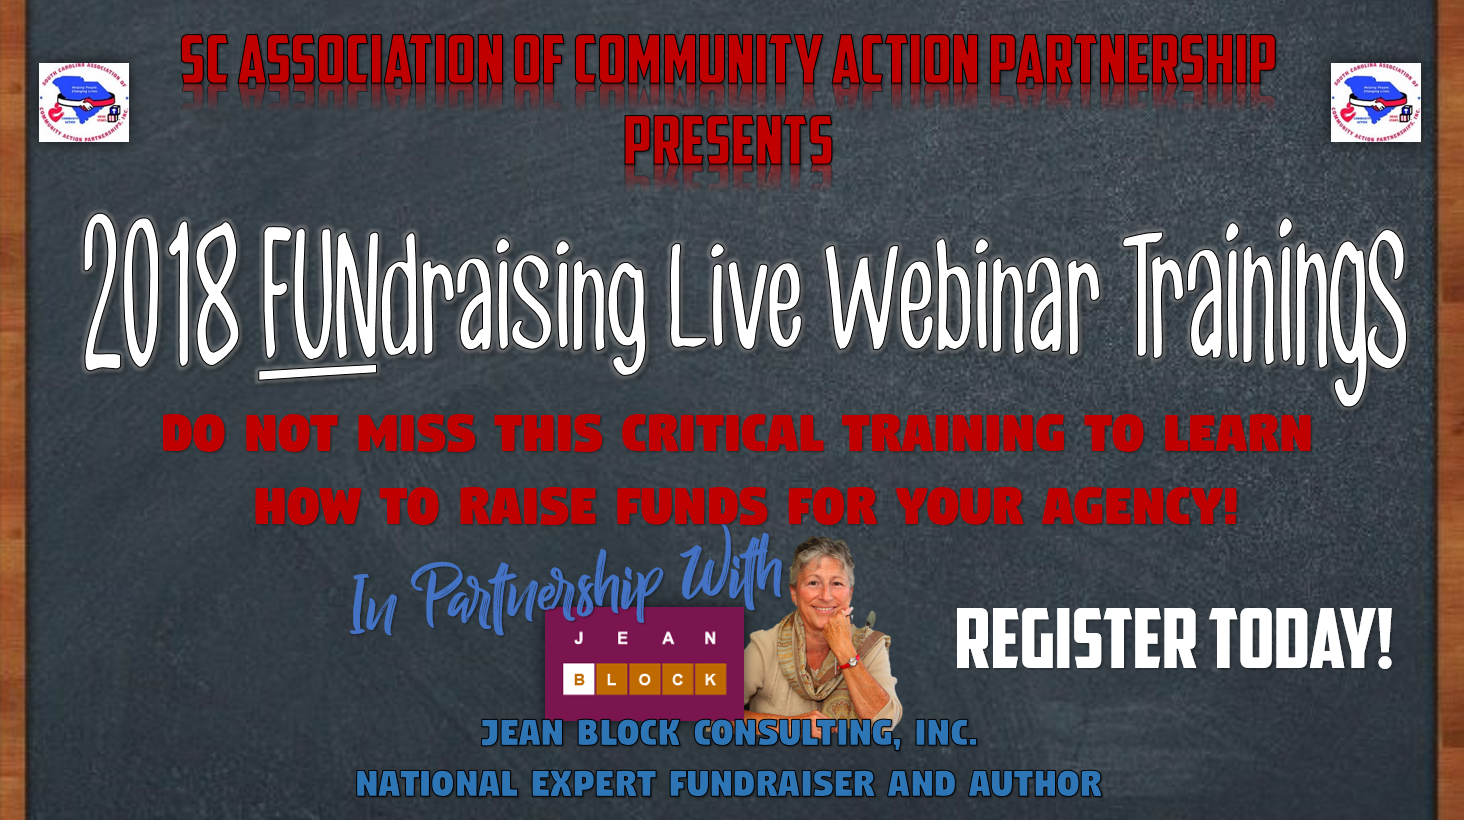 2018 Fundraising Live Webinar Training's for CAA's, Weatherization & Head Start